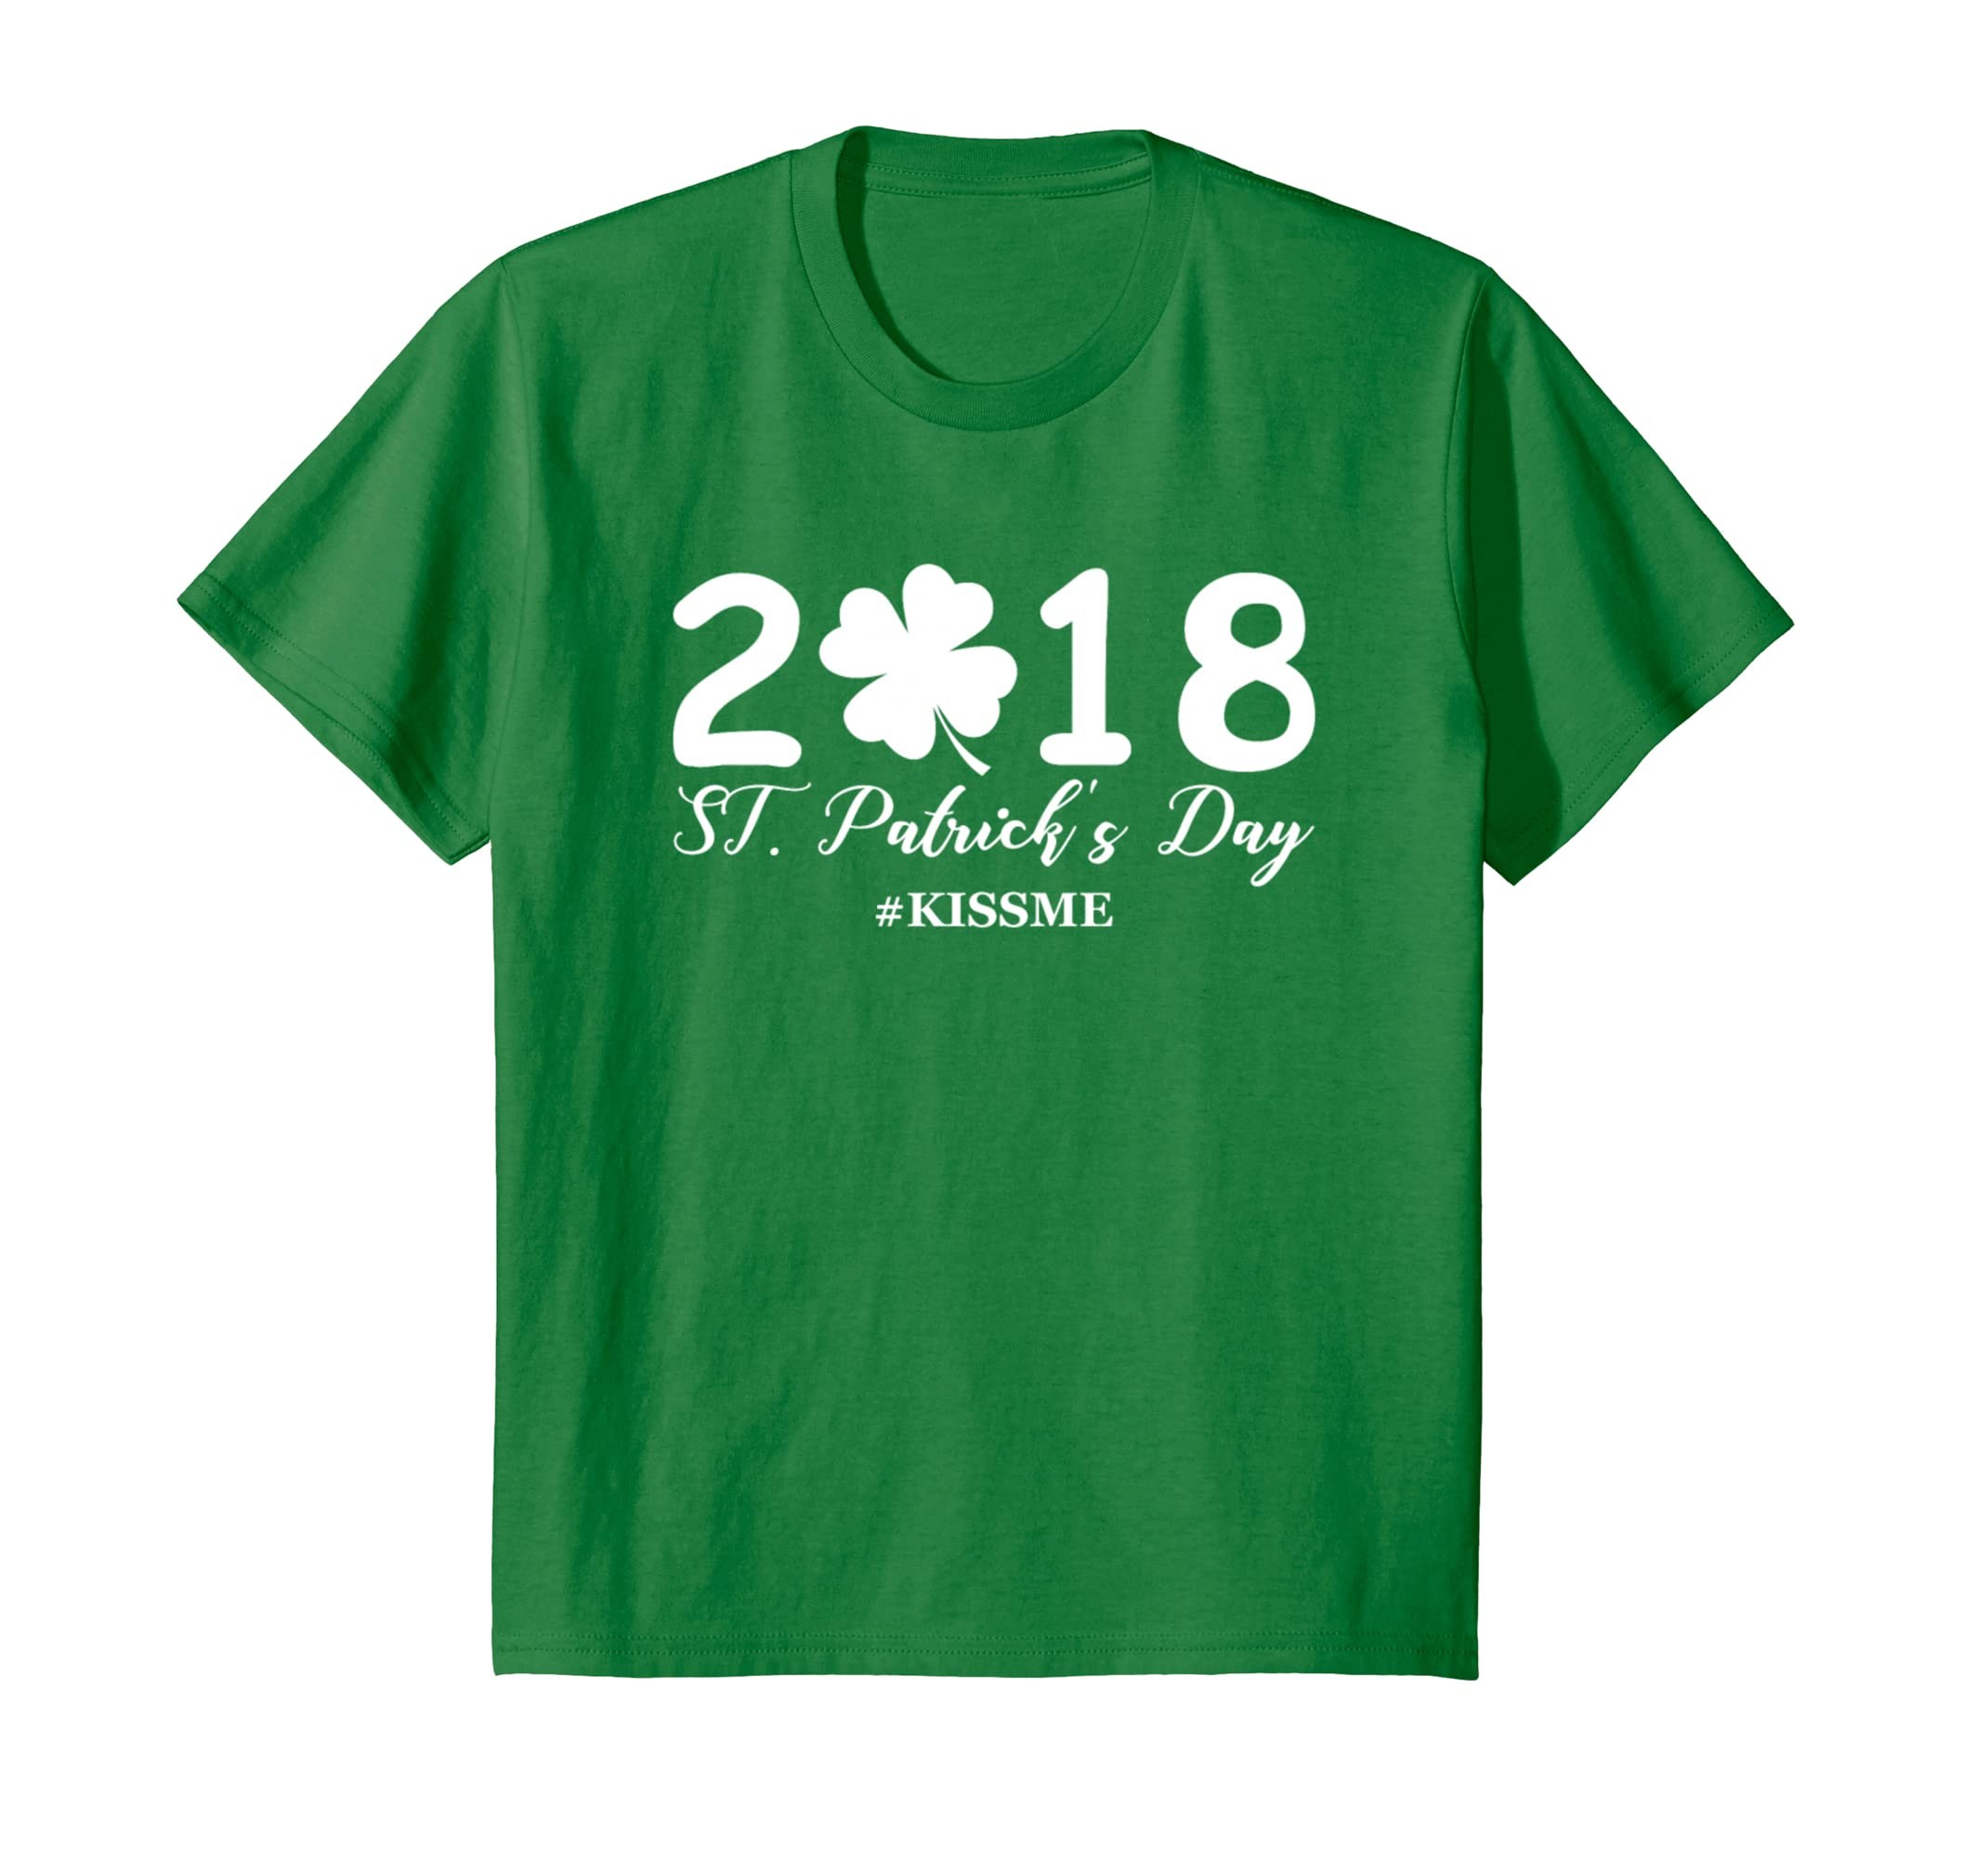 2018 Patricks Day Kiss Shirt